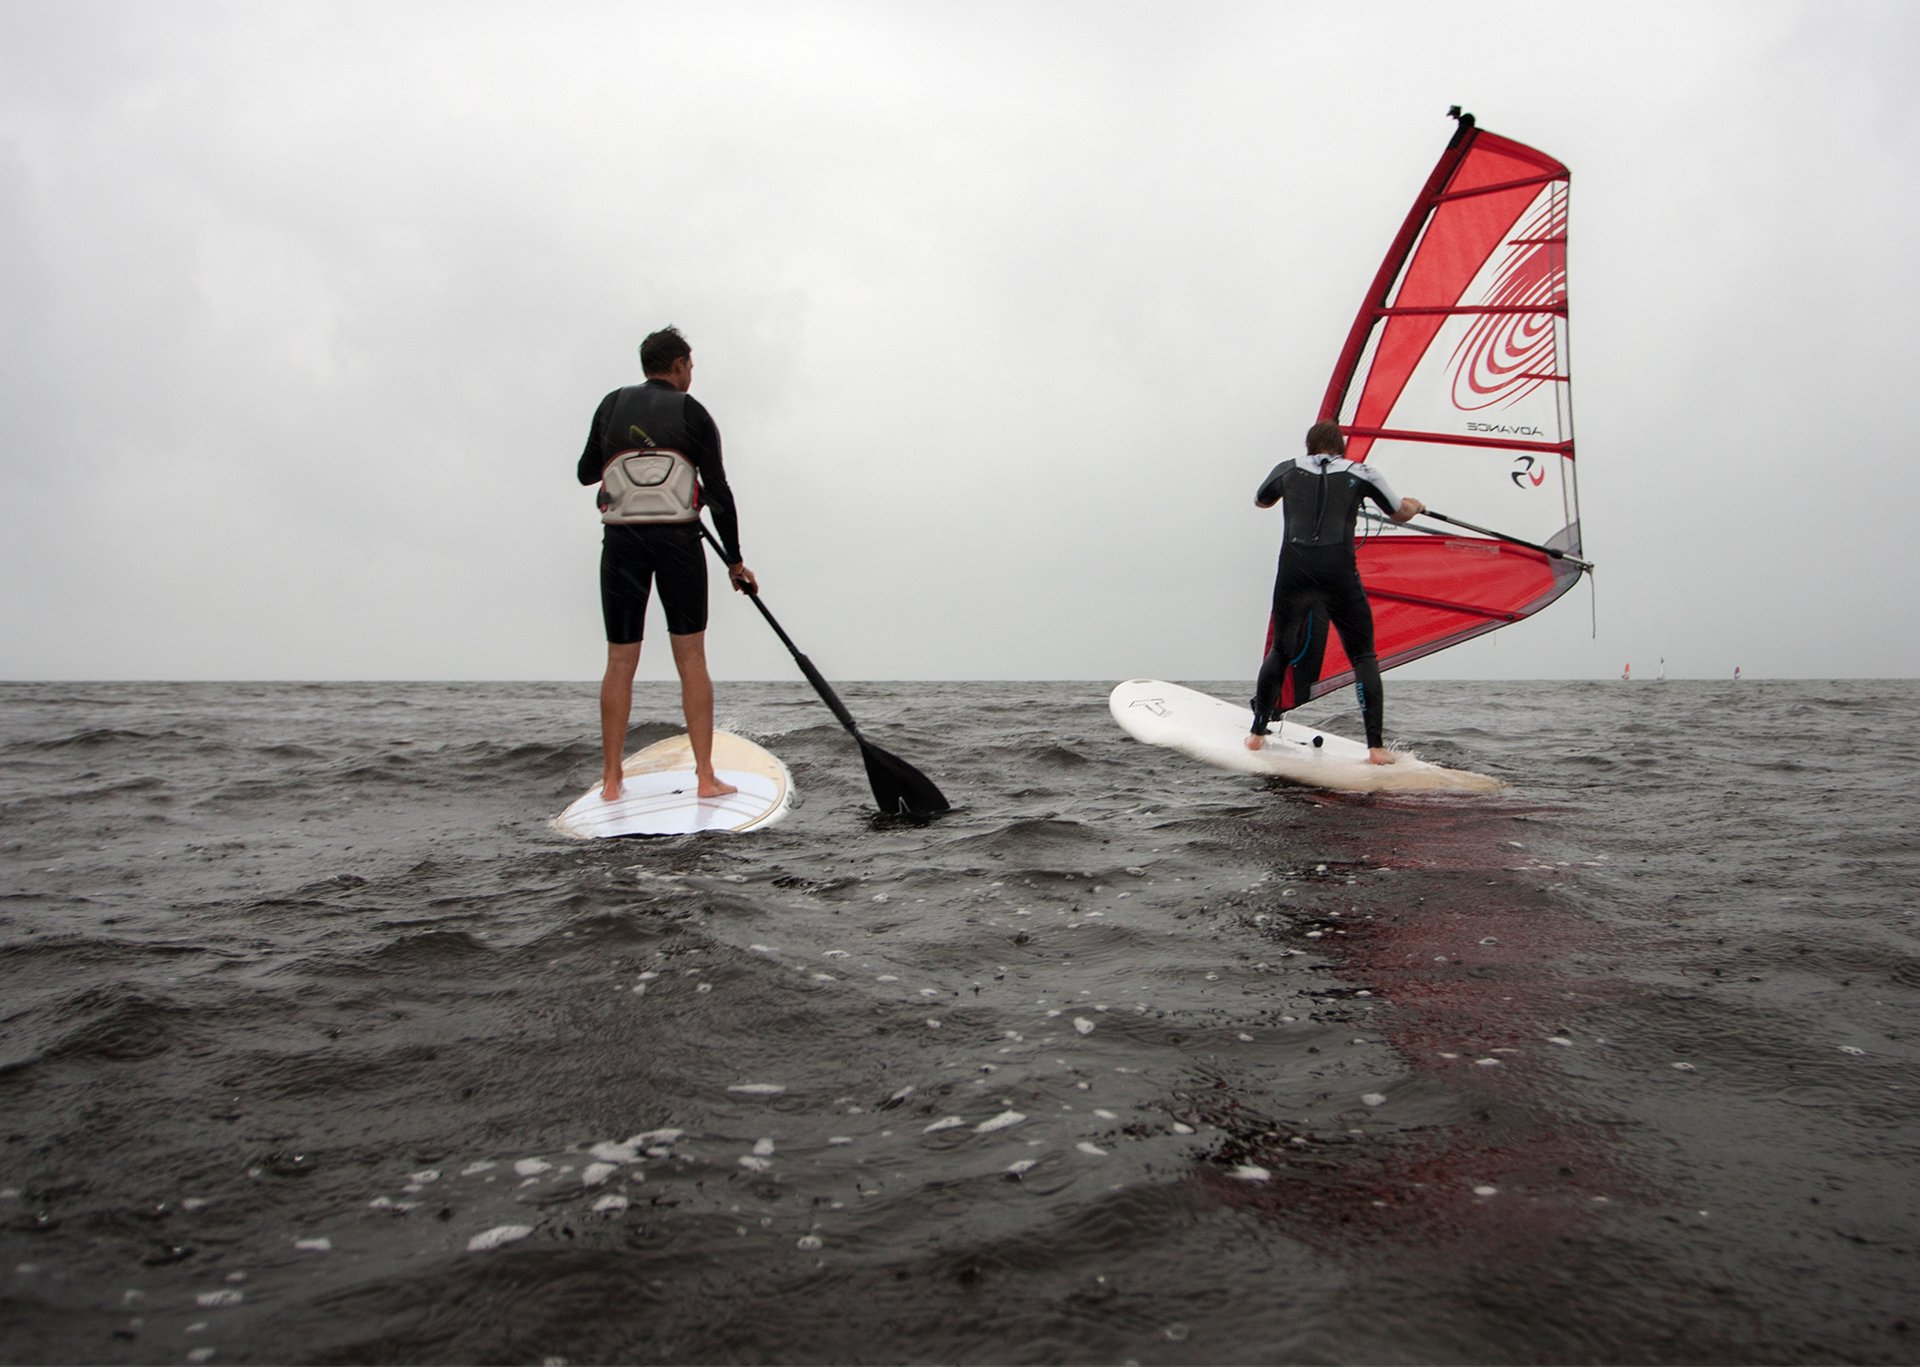 Best time for Windsurfing and Kitesurfing in Estonia 2020